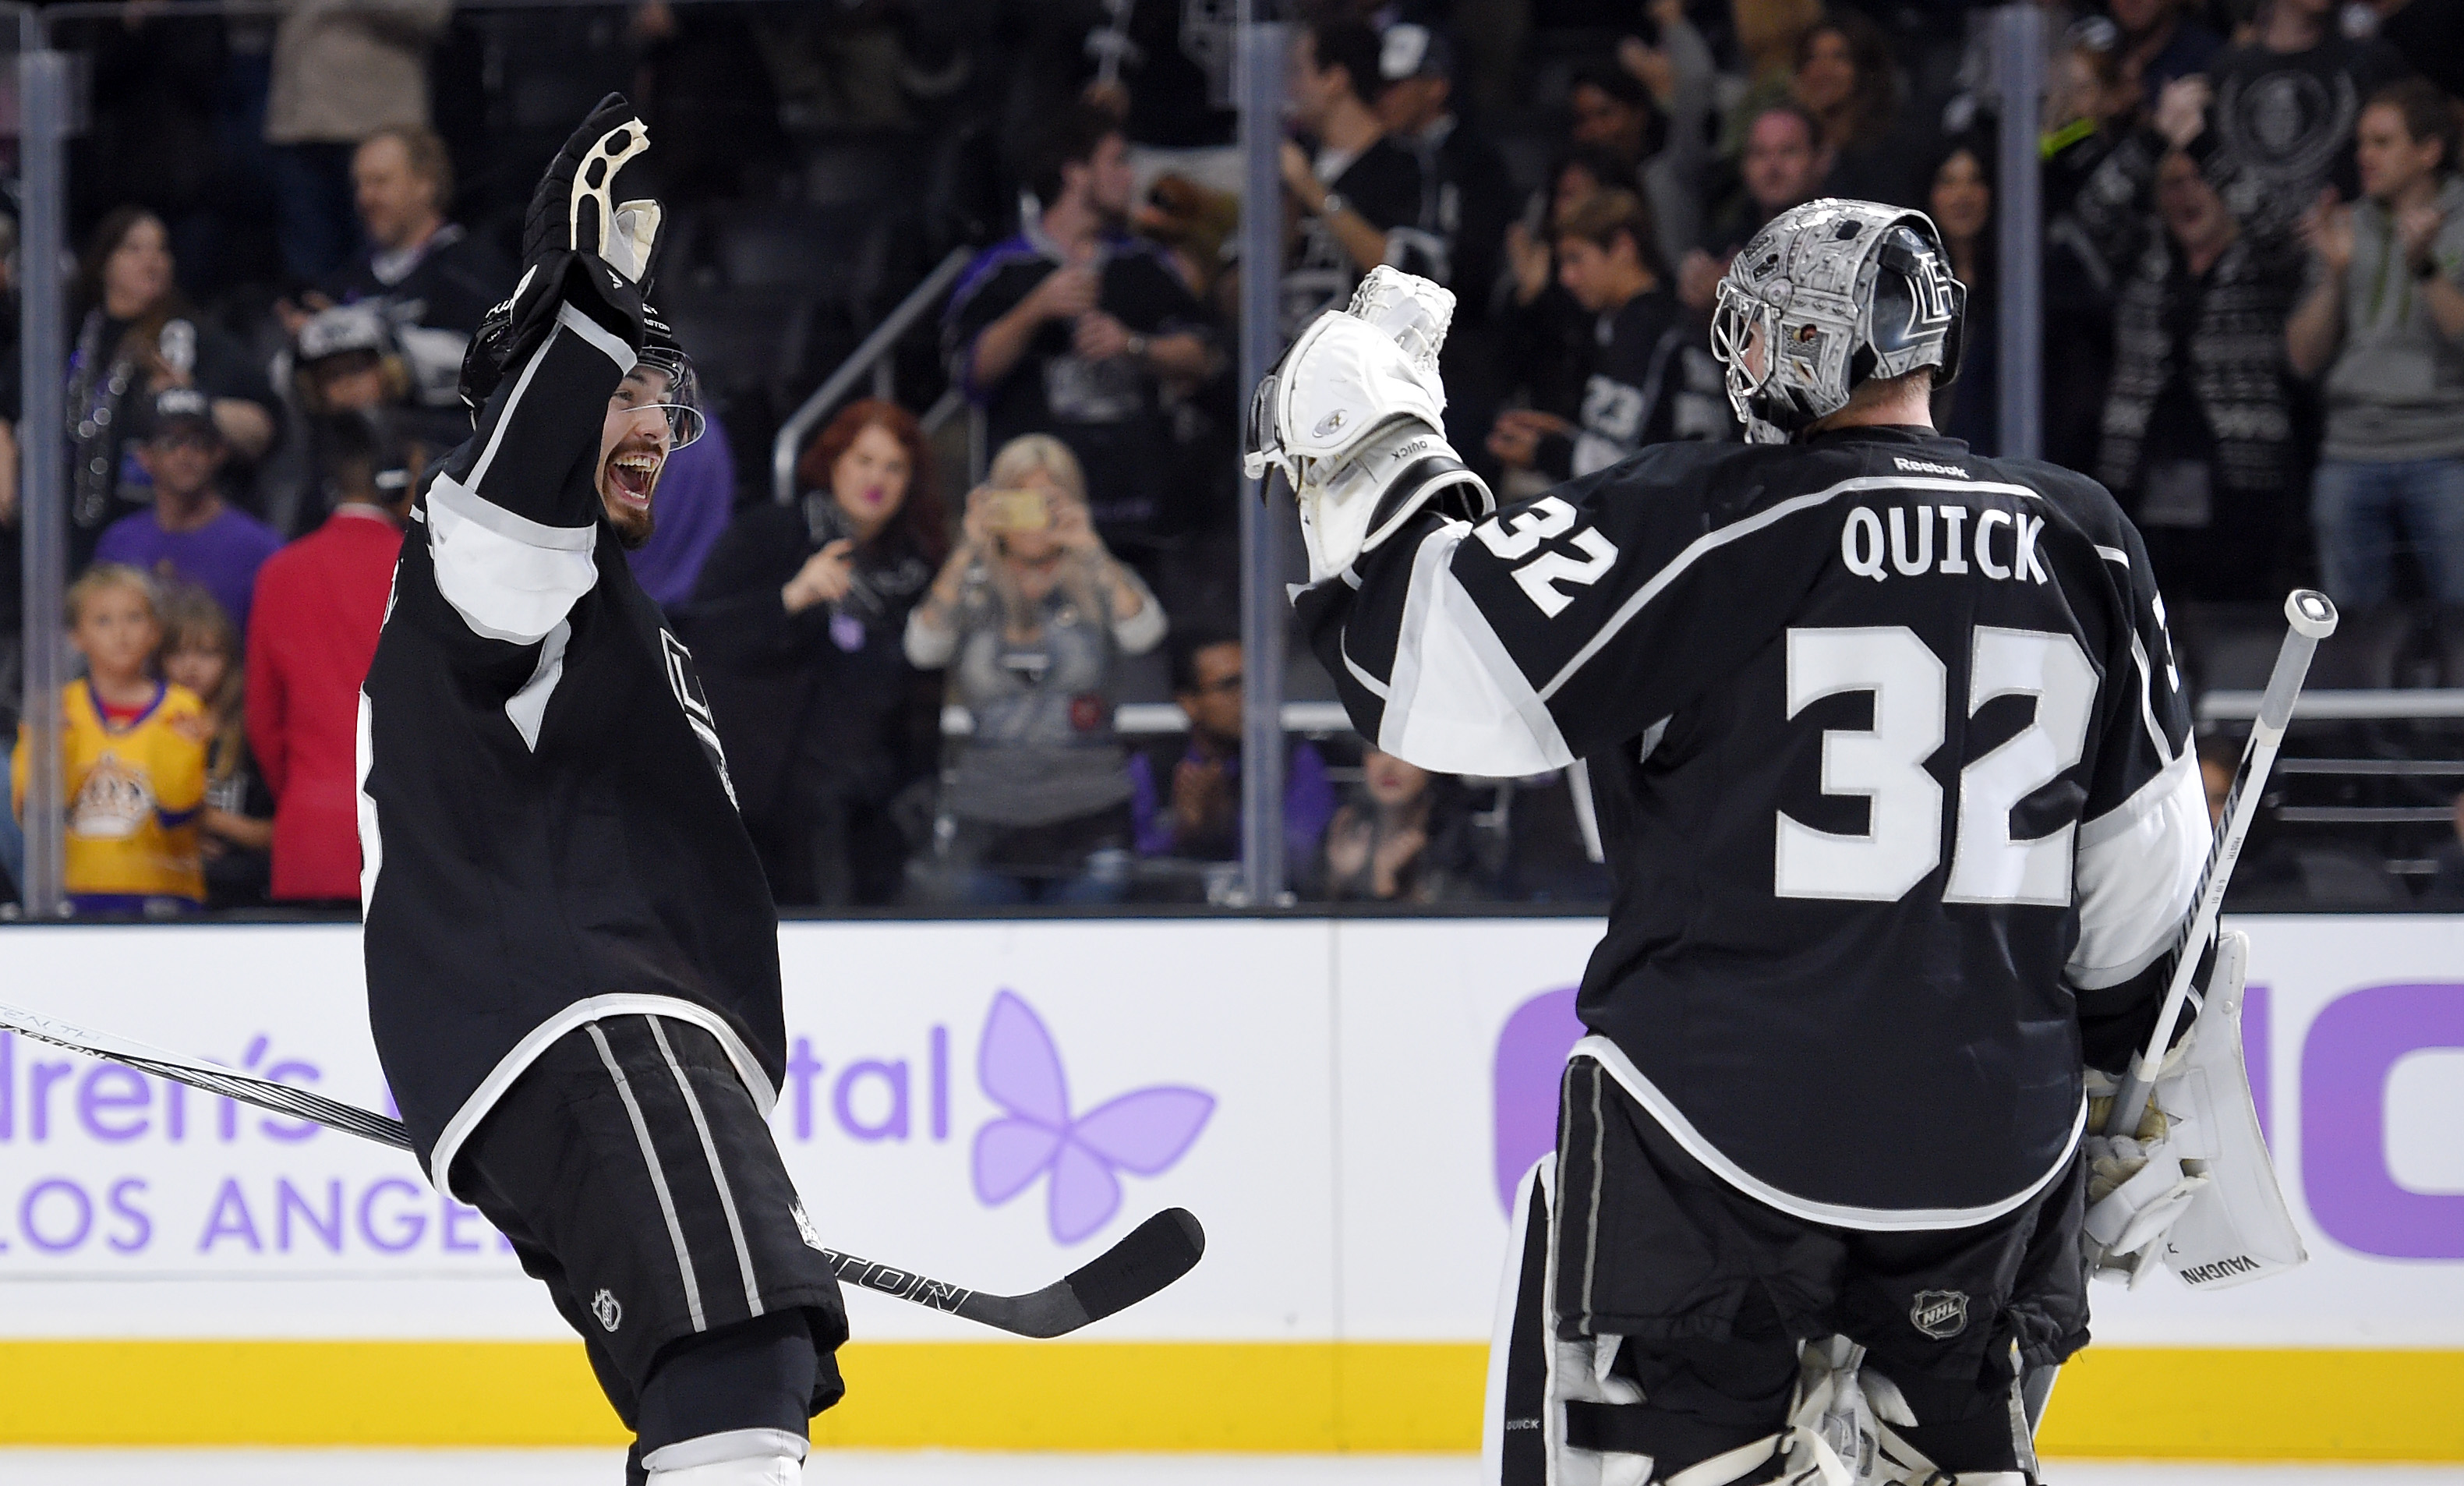 Los Angeles Kings defenseman Drew Doughty, left, congratulates goalie Jonathan Quick after the Kings defeated the Carolina Hurricanes 3-0 in a NHL hockey game, Friday, Oct. 23, 2015, in Los Angeles. (AP Photo/Mark J. Terrill)